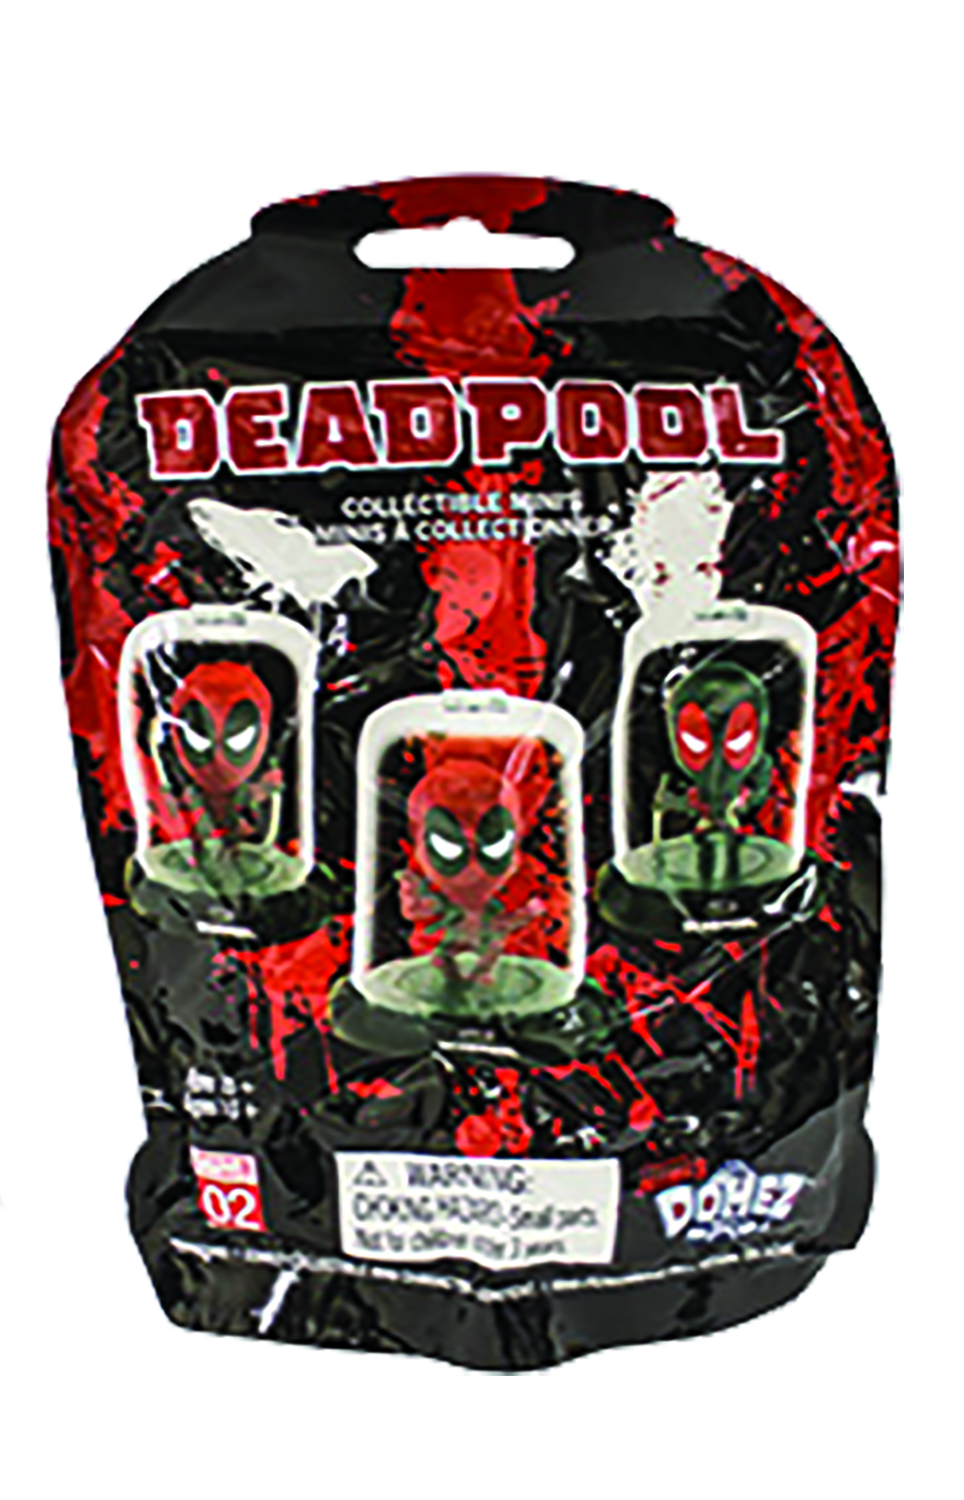 MARVEL DEADPOOL DOMEZ SER 1 FIGURES 24PC BMB DS